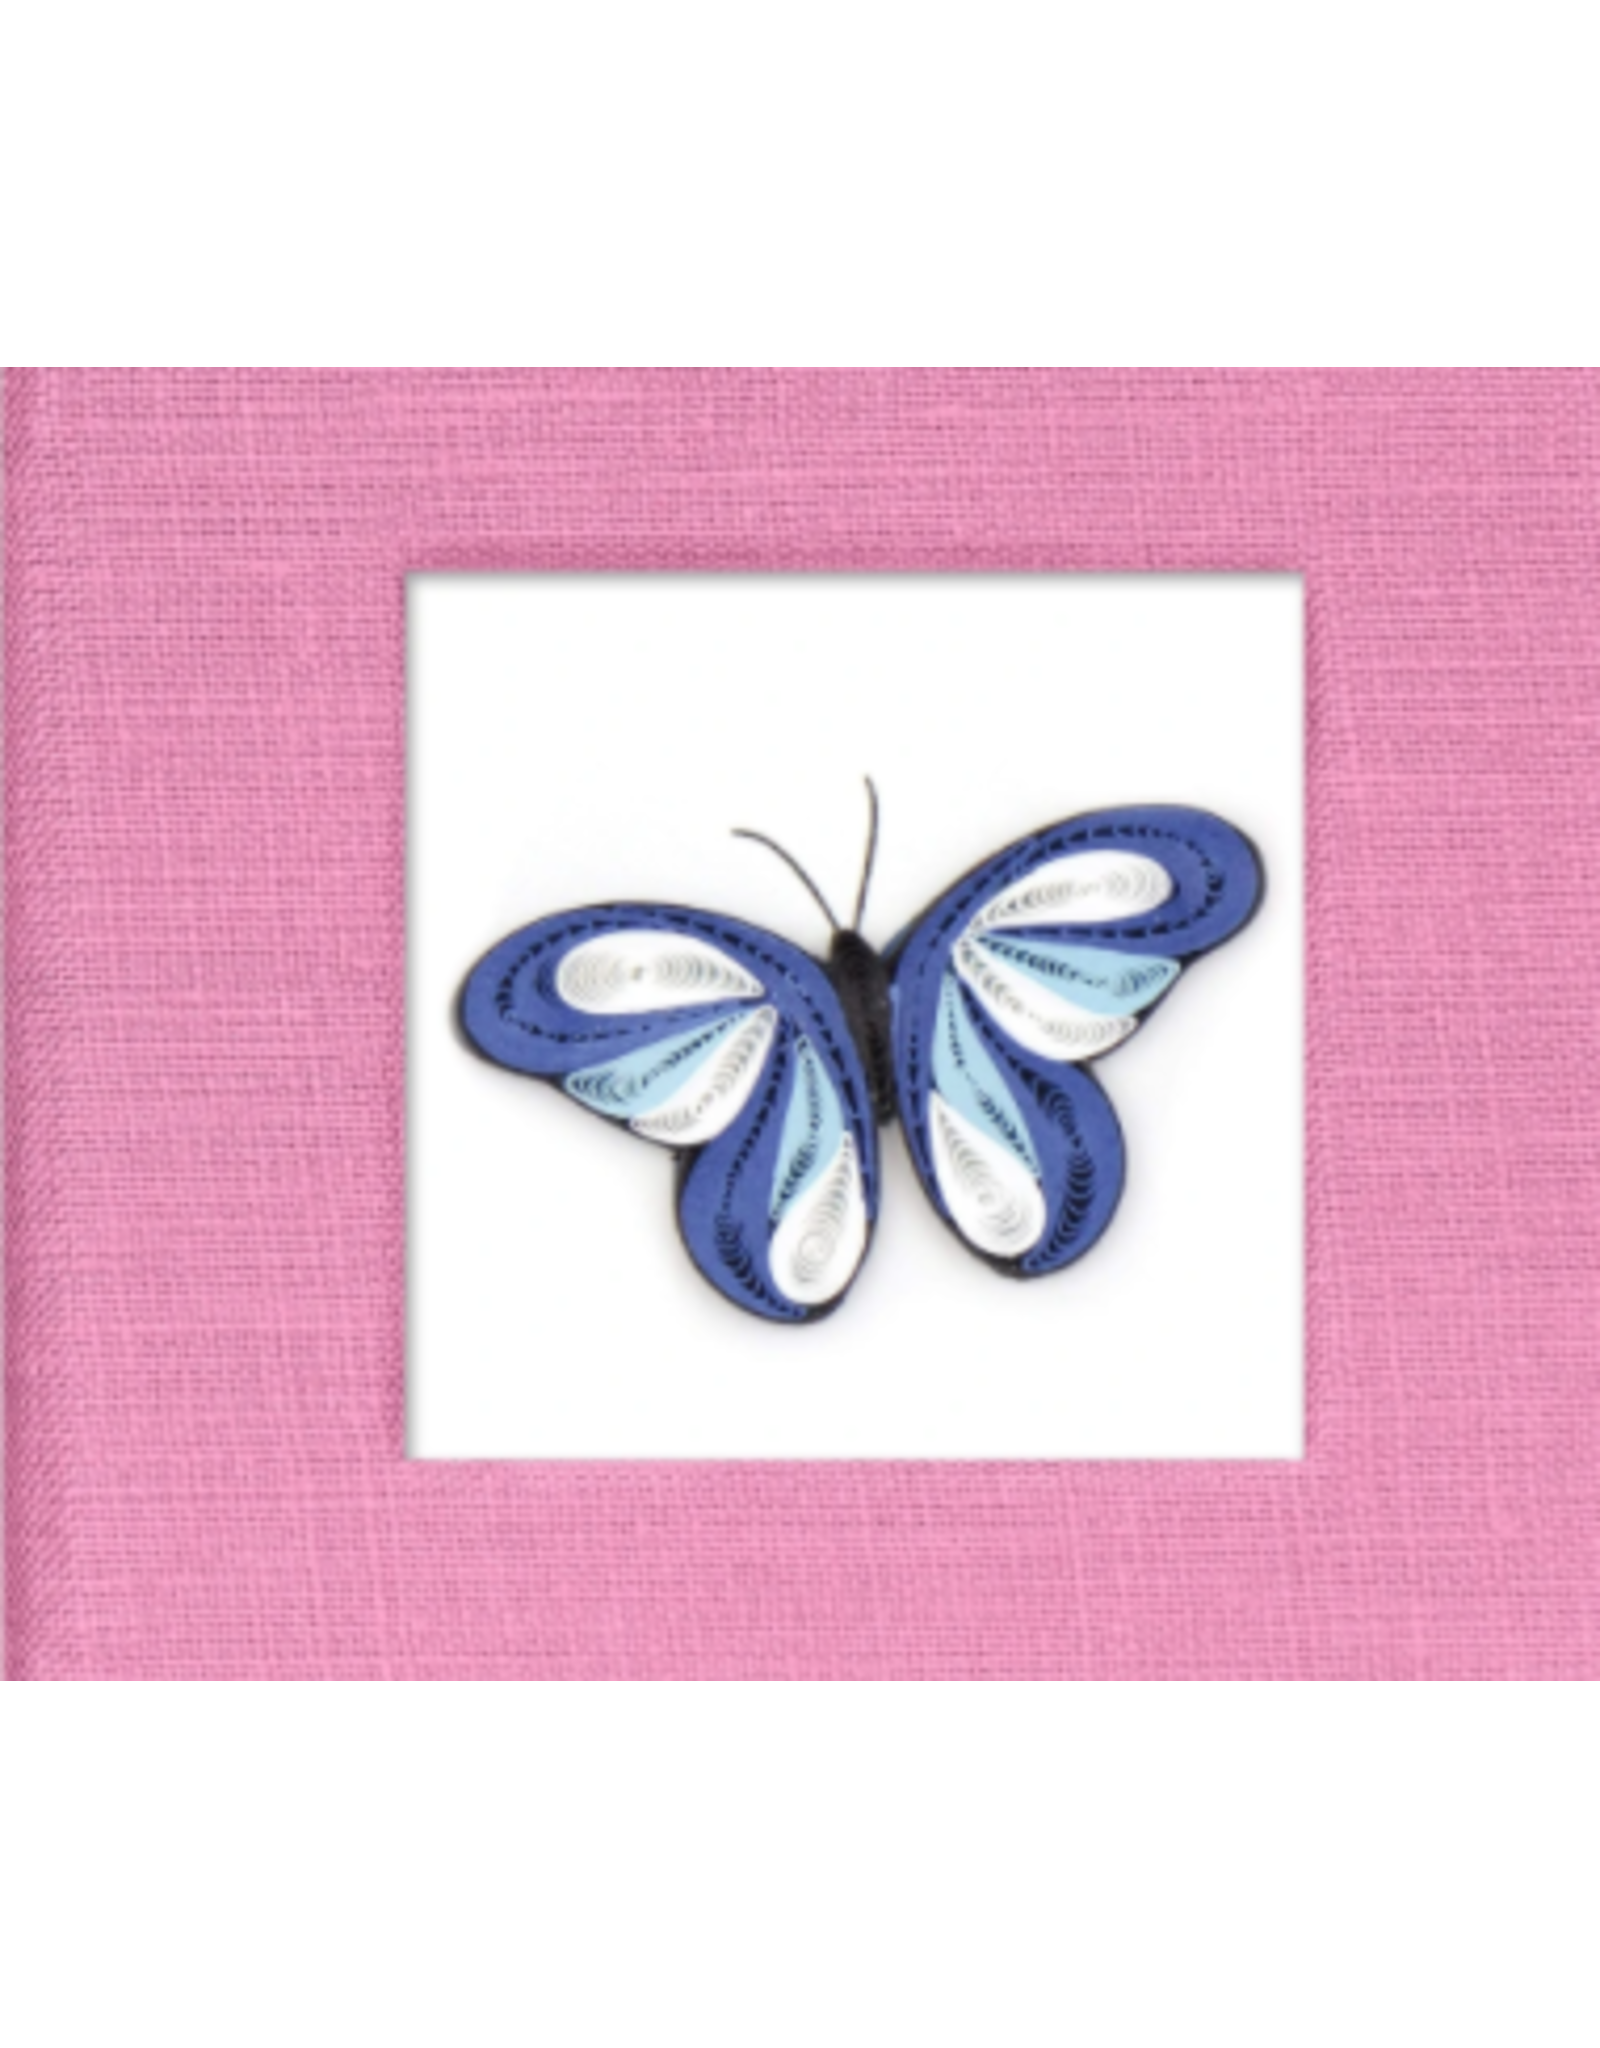 Quilled Post It Notes Cover, Blue Butterfly, Vietnam